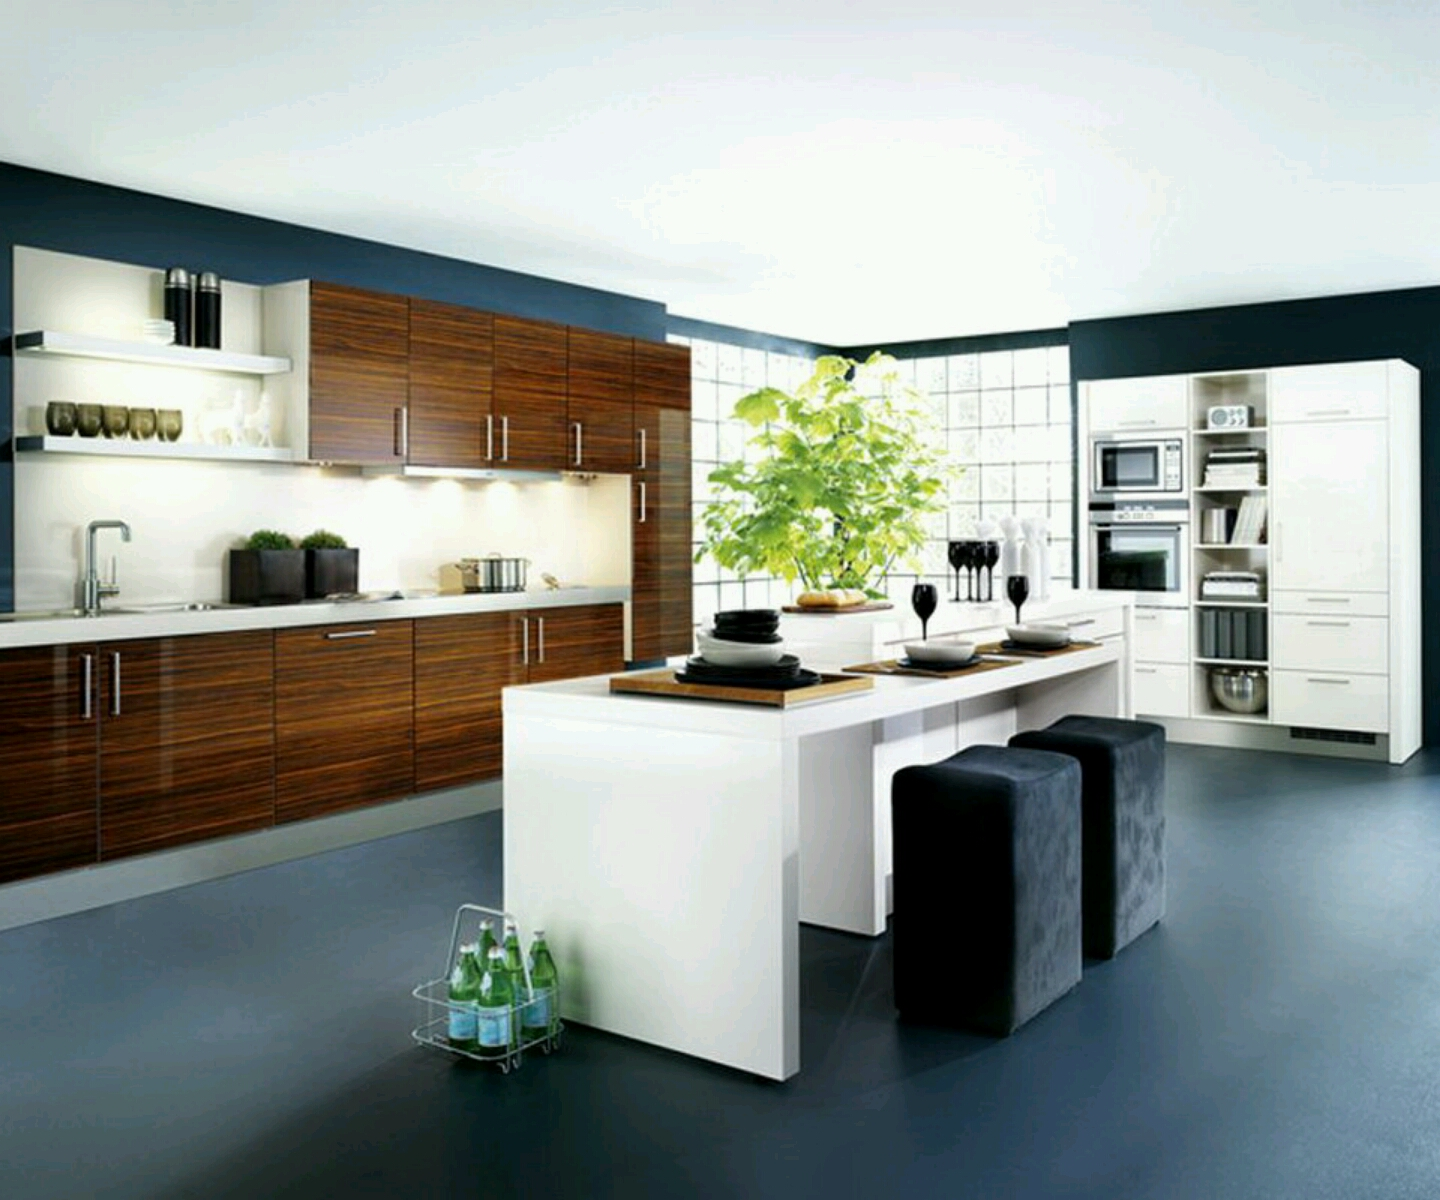 New home designs latest kitchen cabinets designs modern for Kitchen design modern style